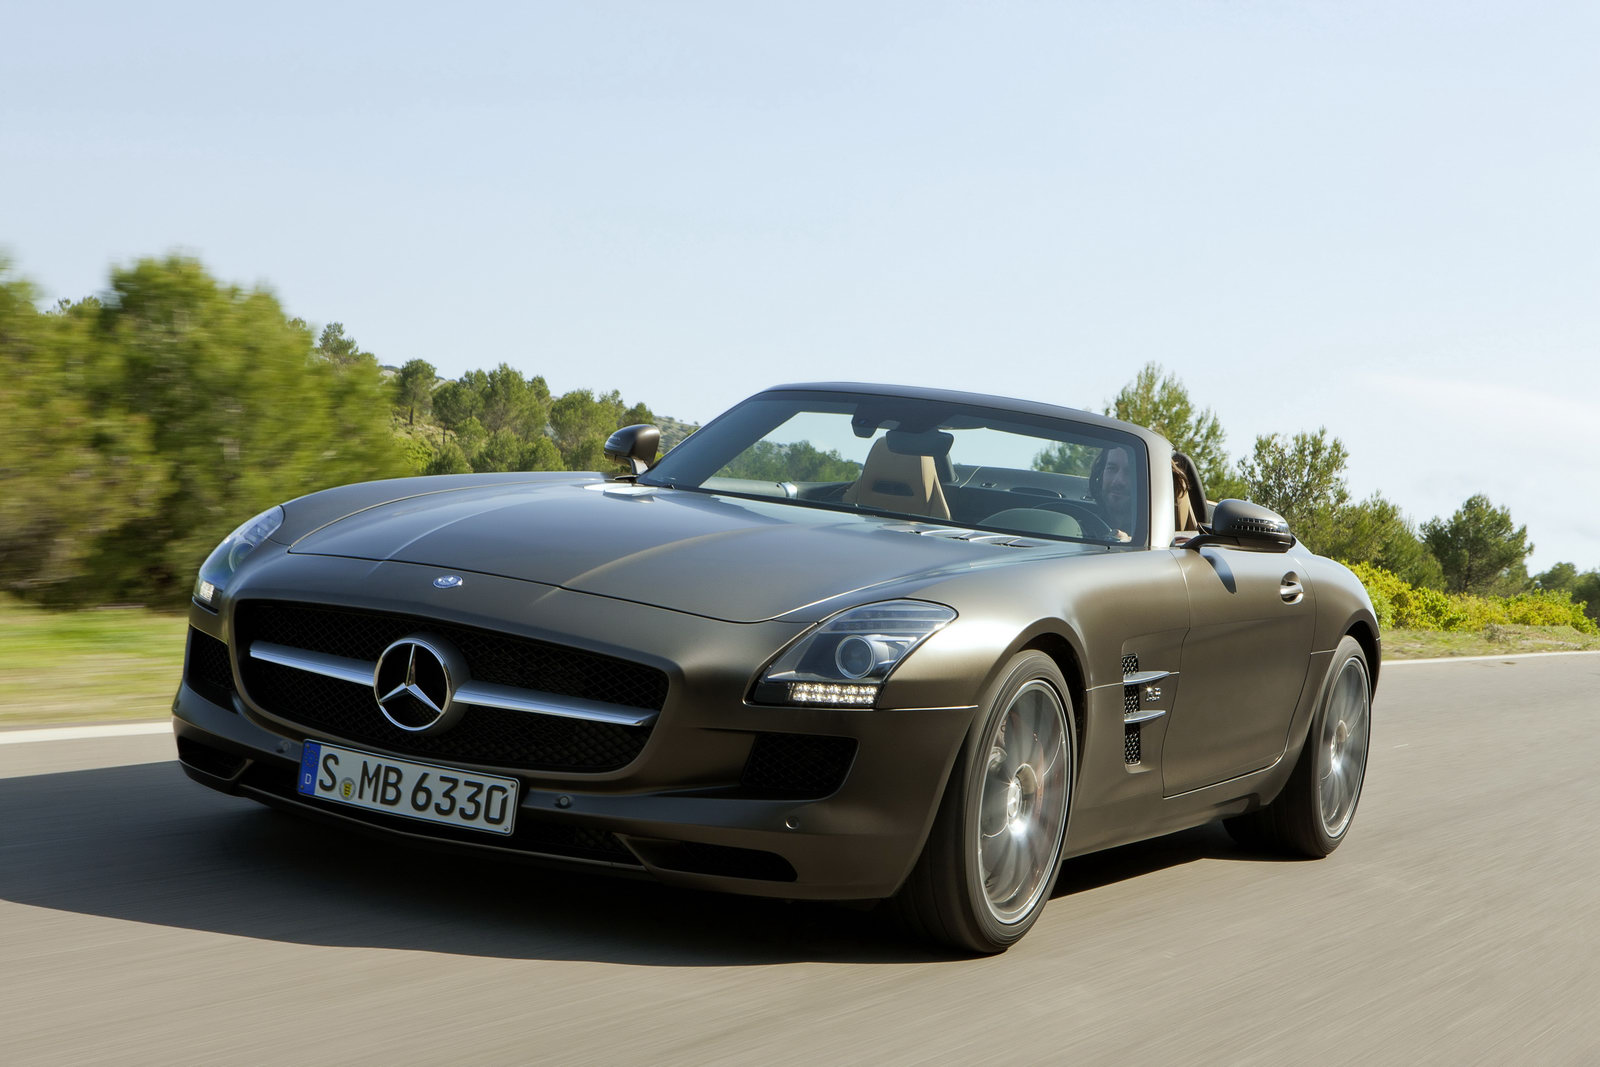 2012 mercedes benz sls amg roadster revealed blankmode for 2012 mercedes benz sls amg